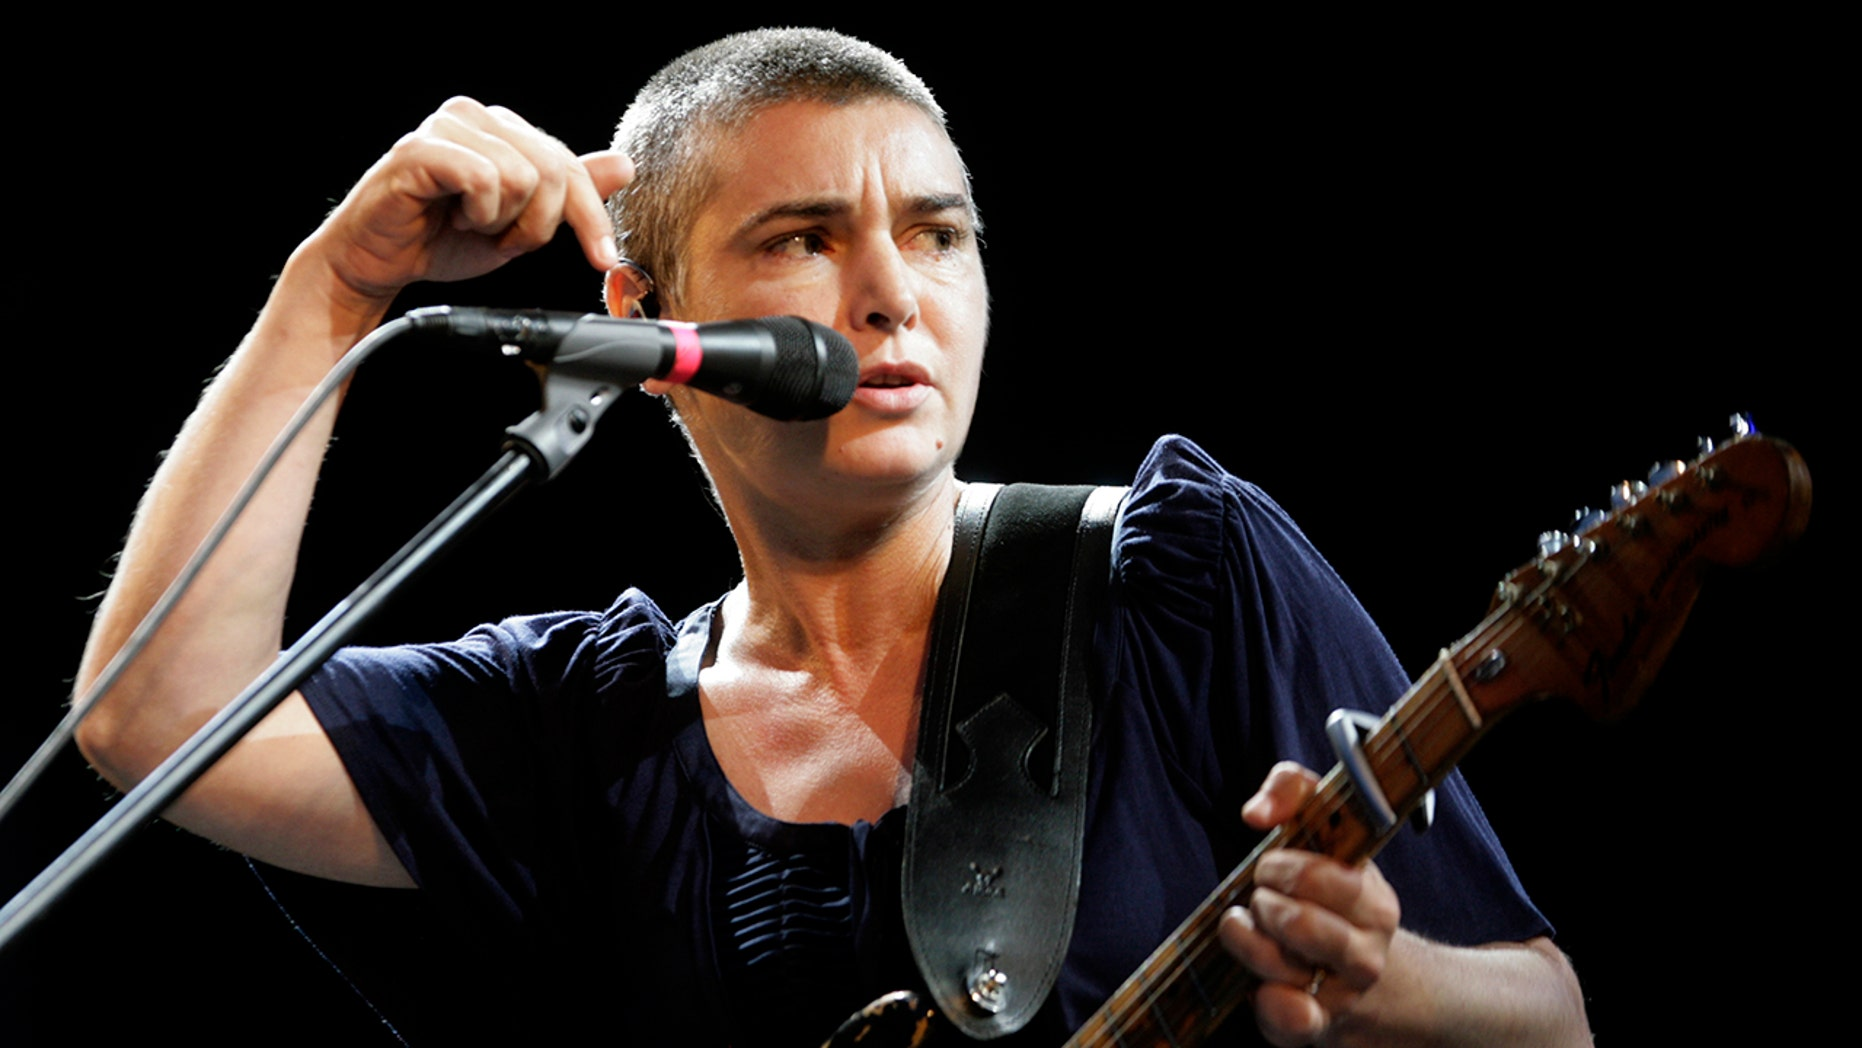 Sinead O'Connor calls white people 'disgusting' in freaky rant